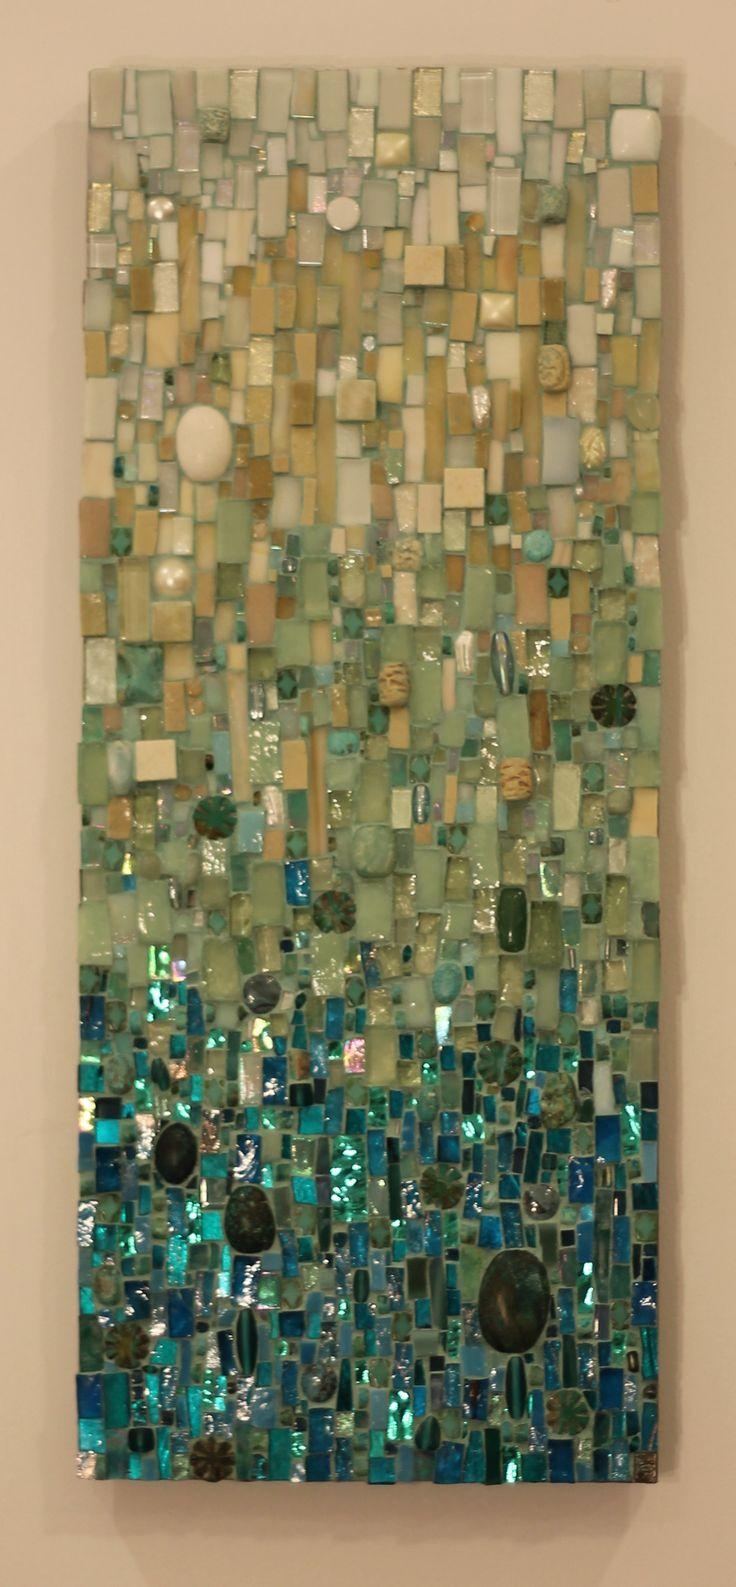 Best 25+ Mosaic Art Ideas On Pinterest | Mosaics, Mosaic And Pertaining To Glass Wall Artworks (Image 16 of 20)